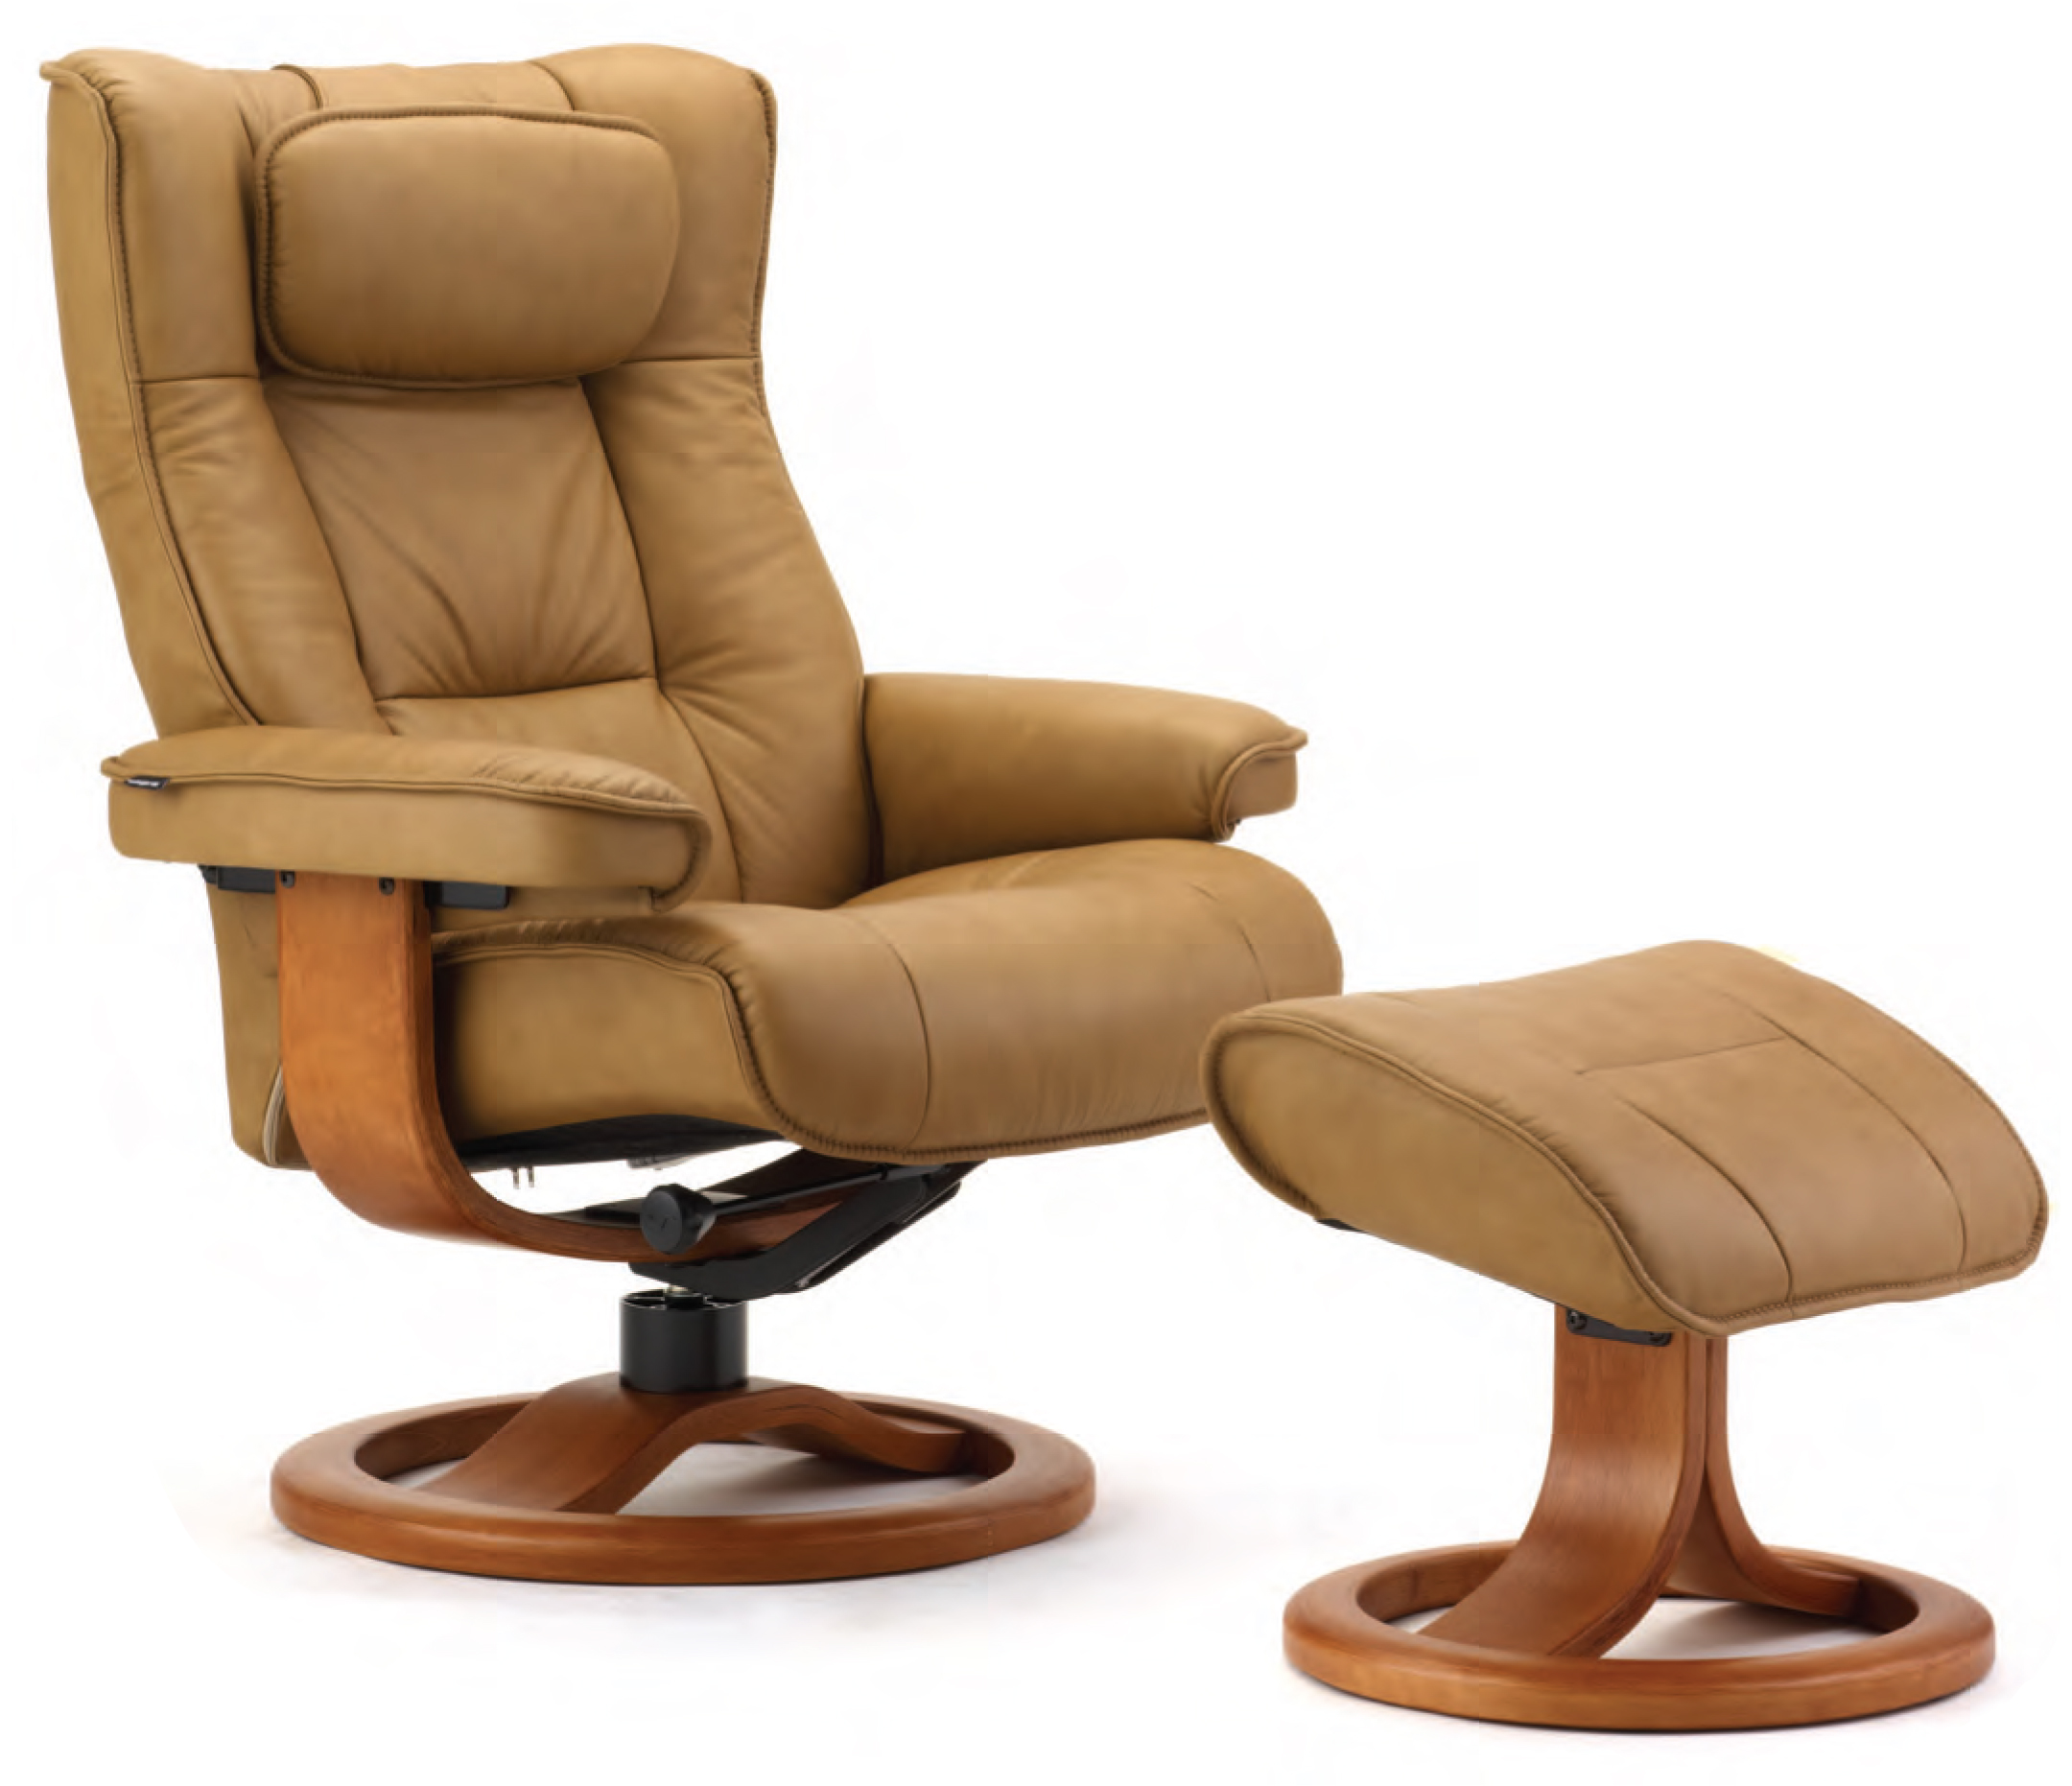 Fjords Regent Hassel Leather Recliner Chair And Ottoman